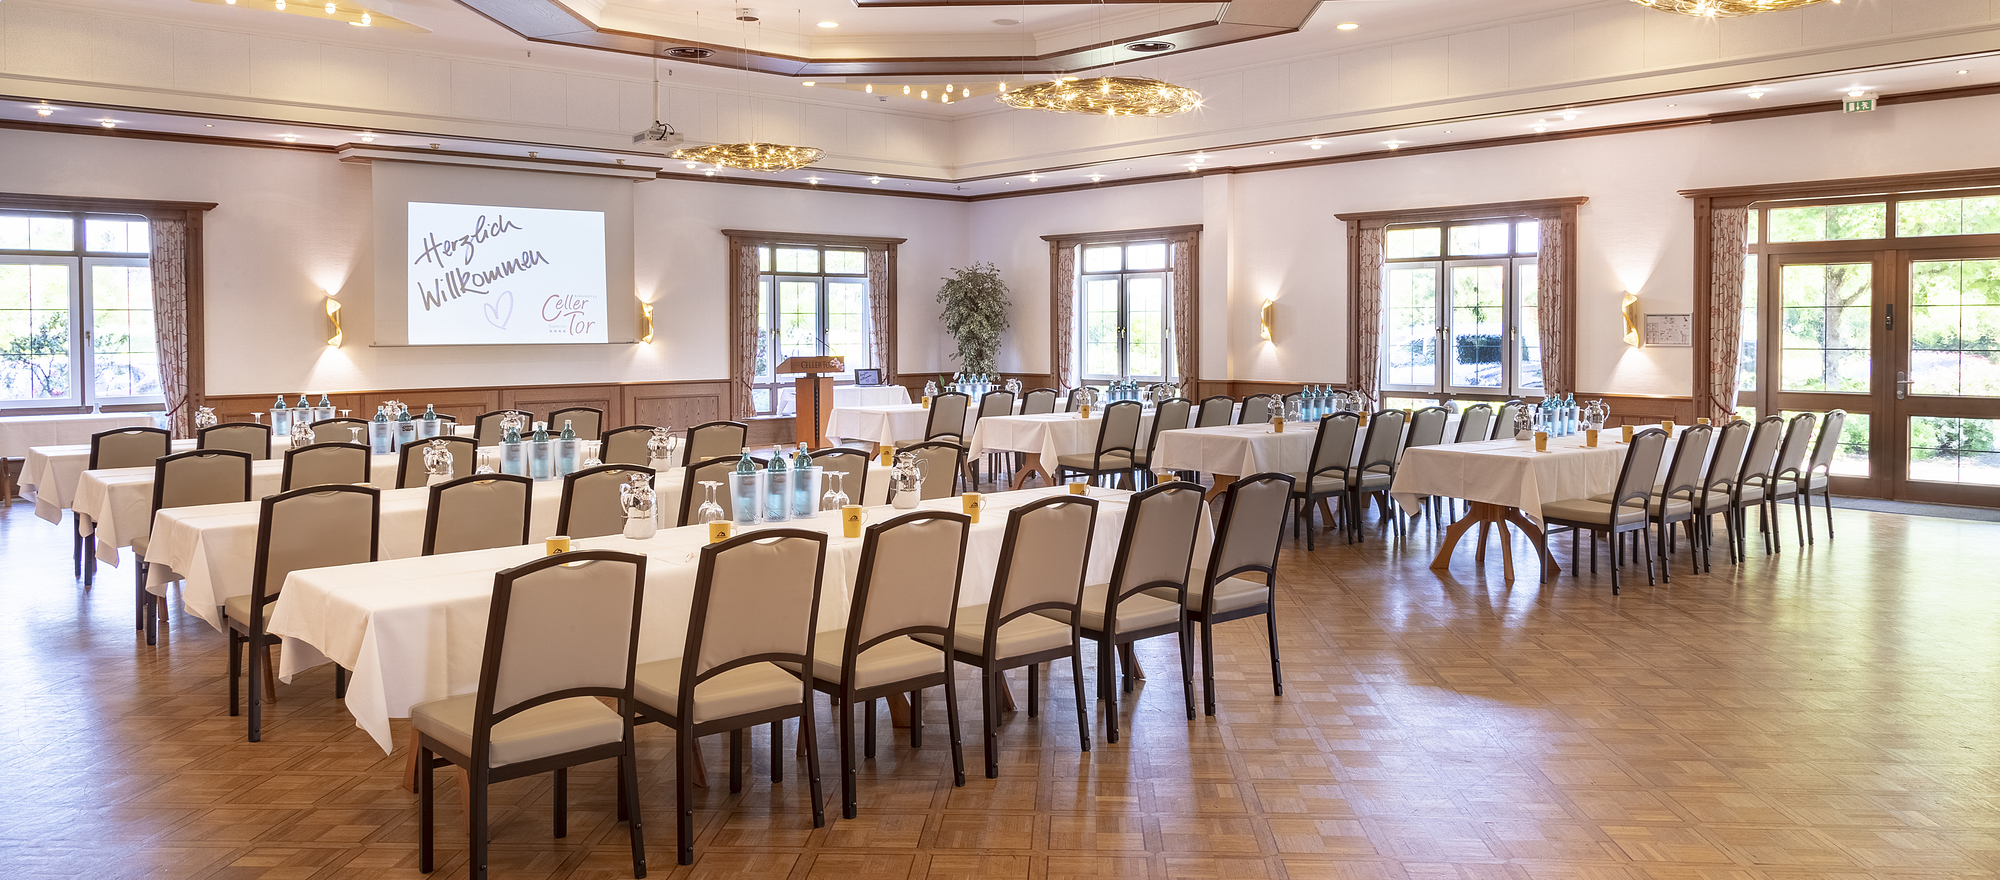 Banquet Hall in 4 Sterne Superior Hotel Ringhotel Celler Tor in Celle